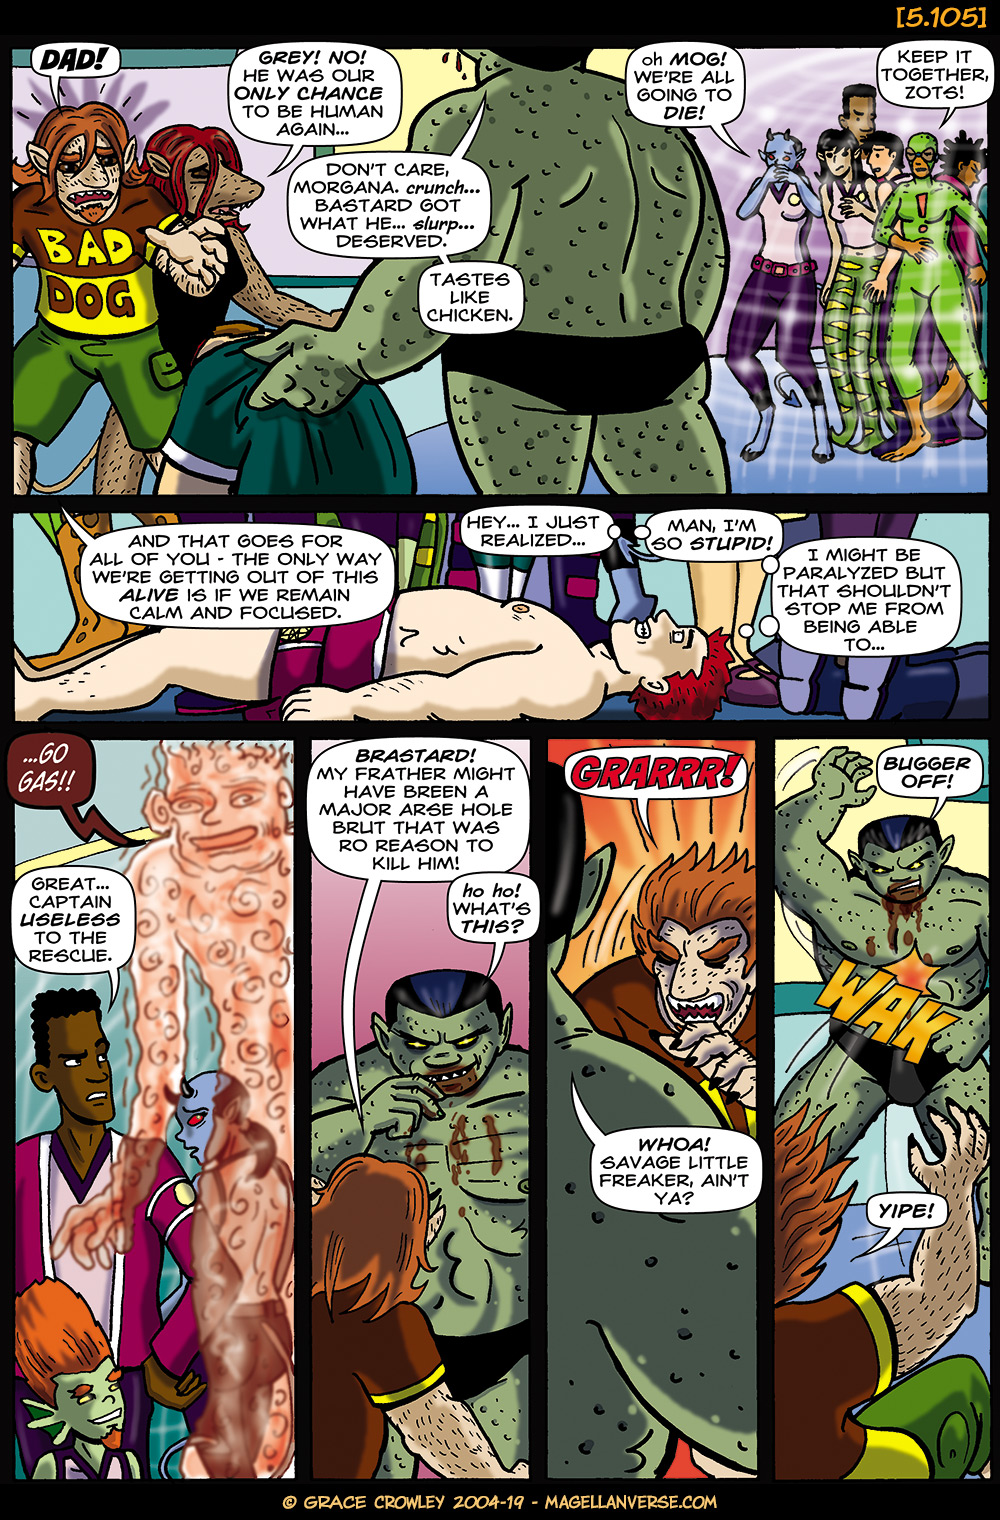 Page 5.105